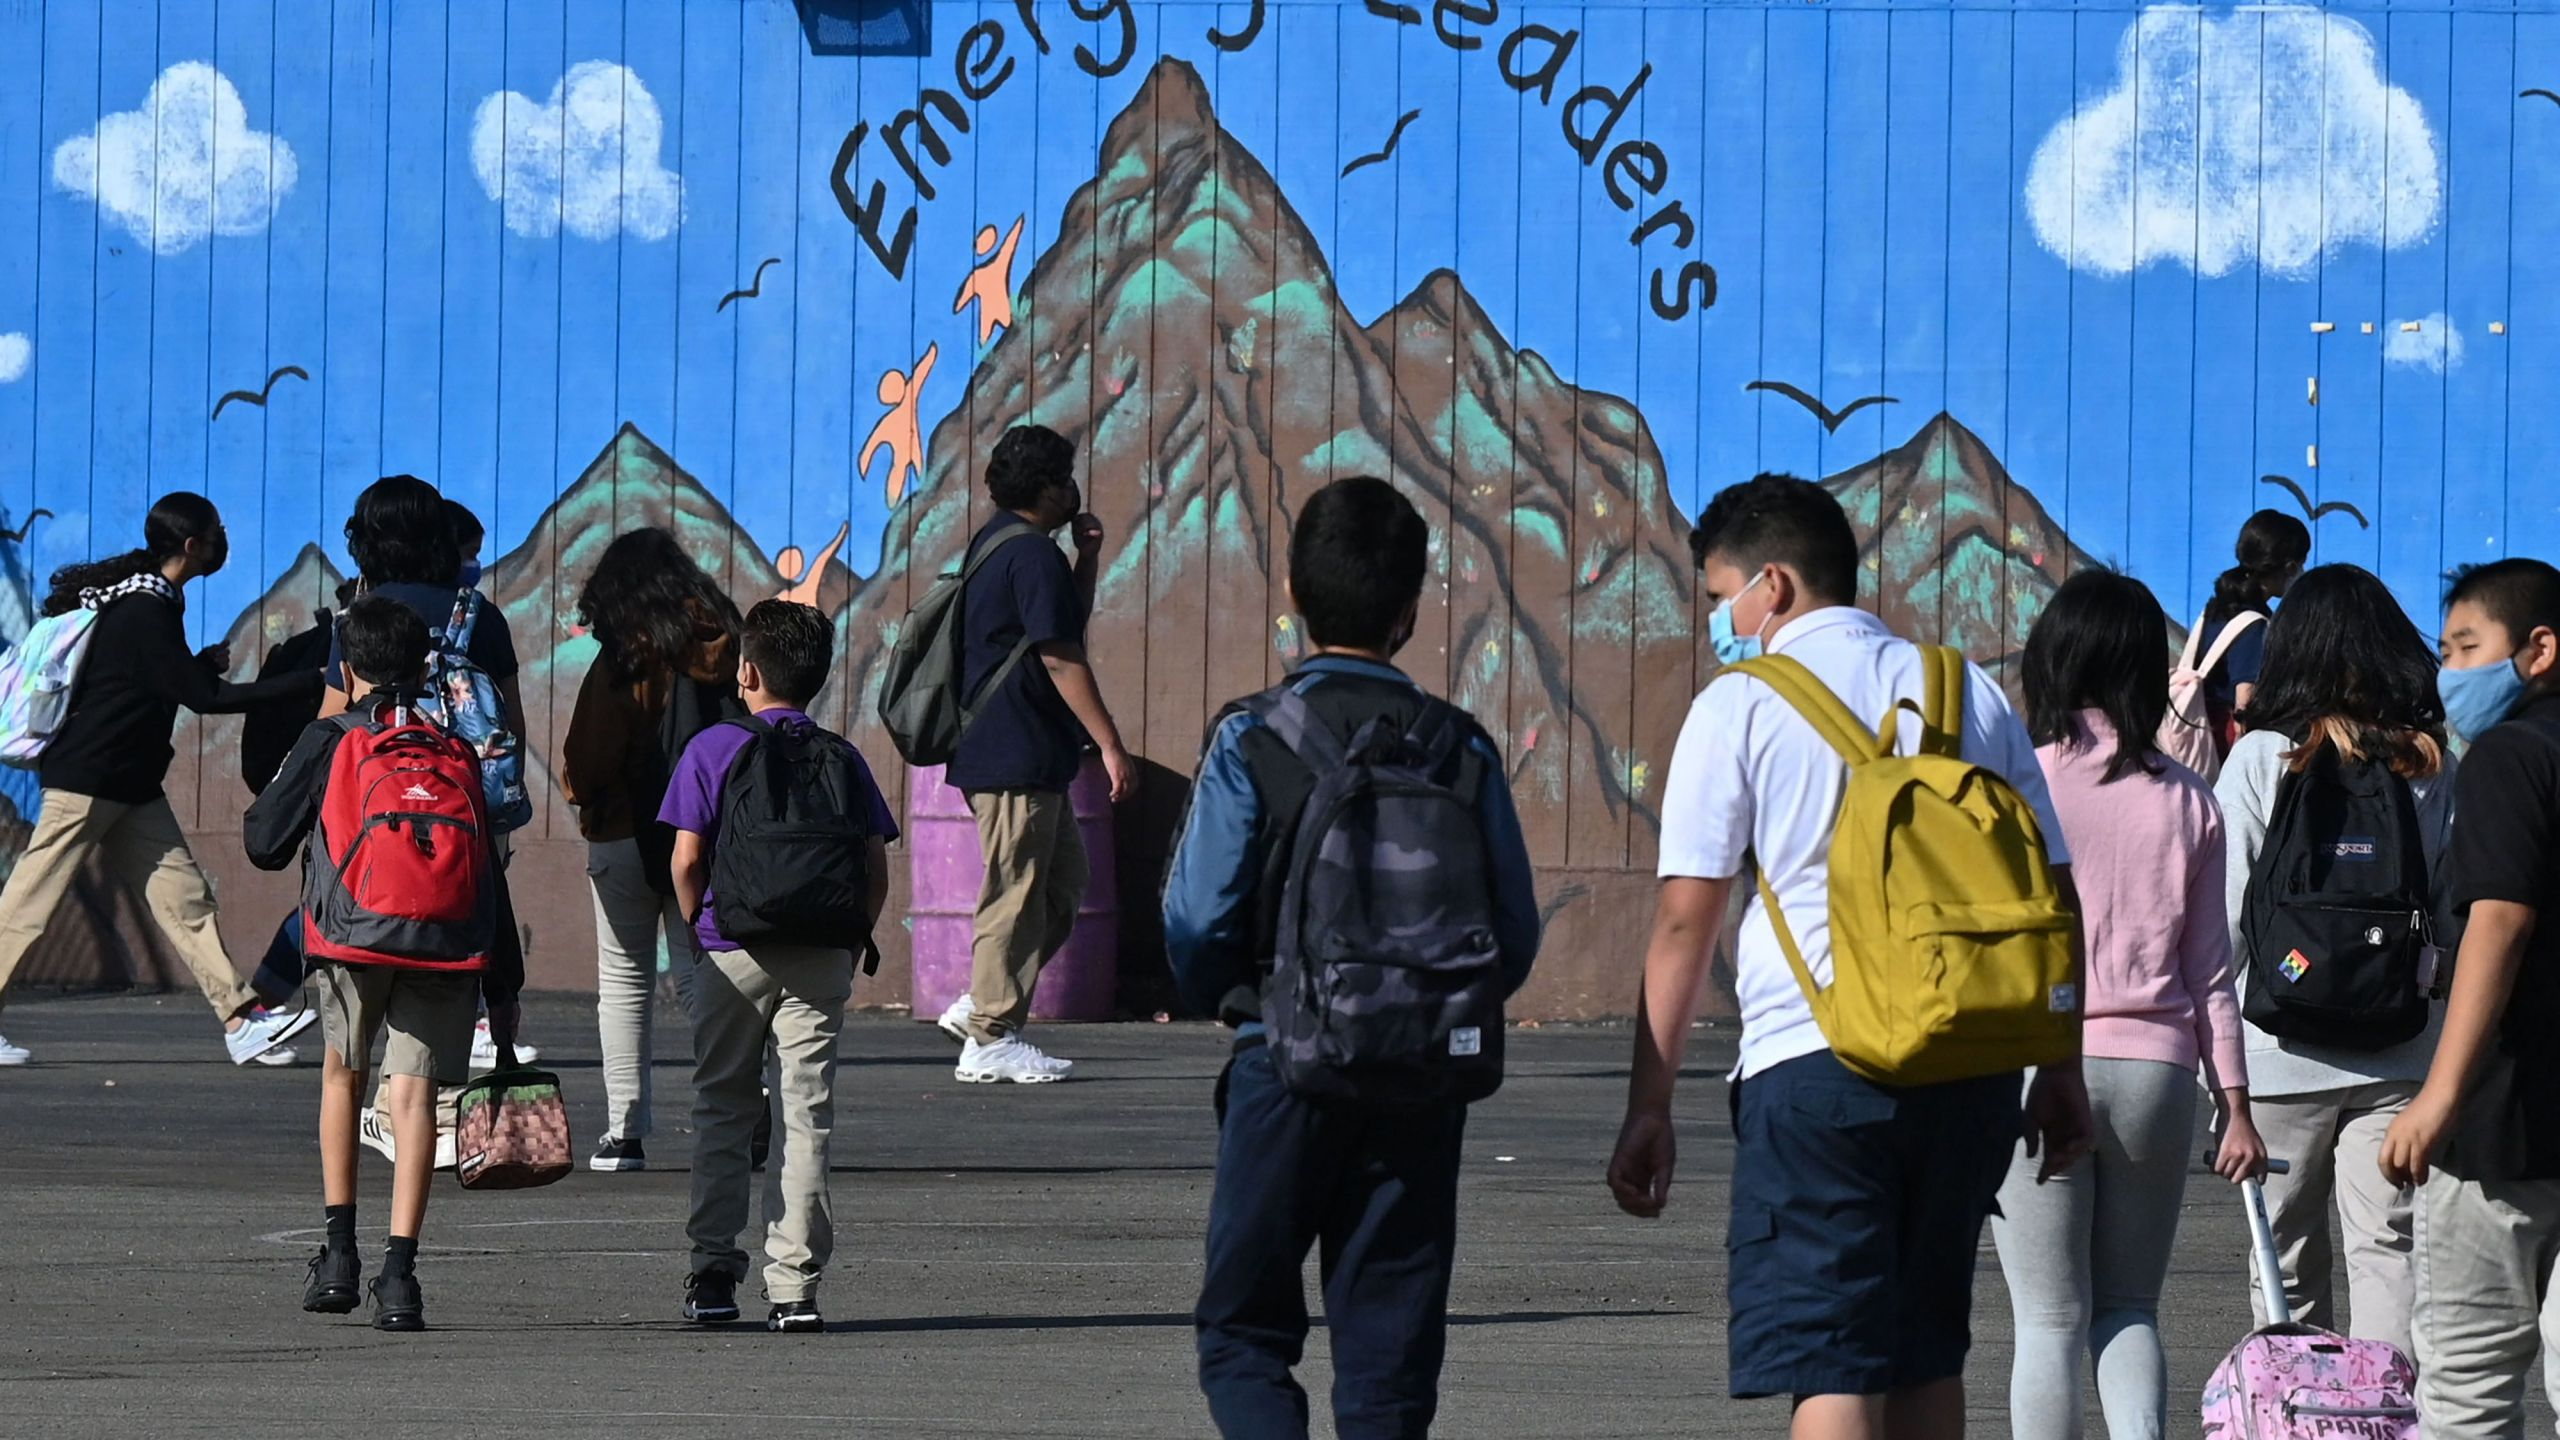 Students walk to their classrooms at a public middle school in Los Angeles on Sept. 10, 2021. (ROBYN BECK/AFP via Getty Images)